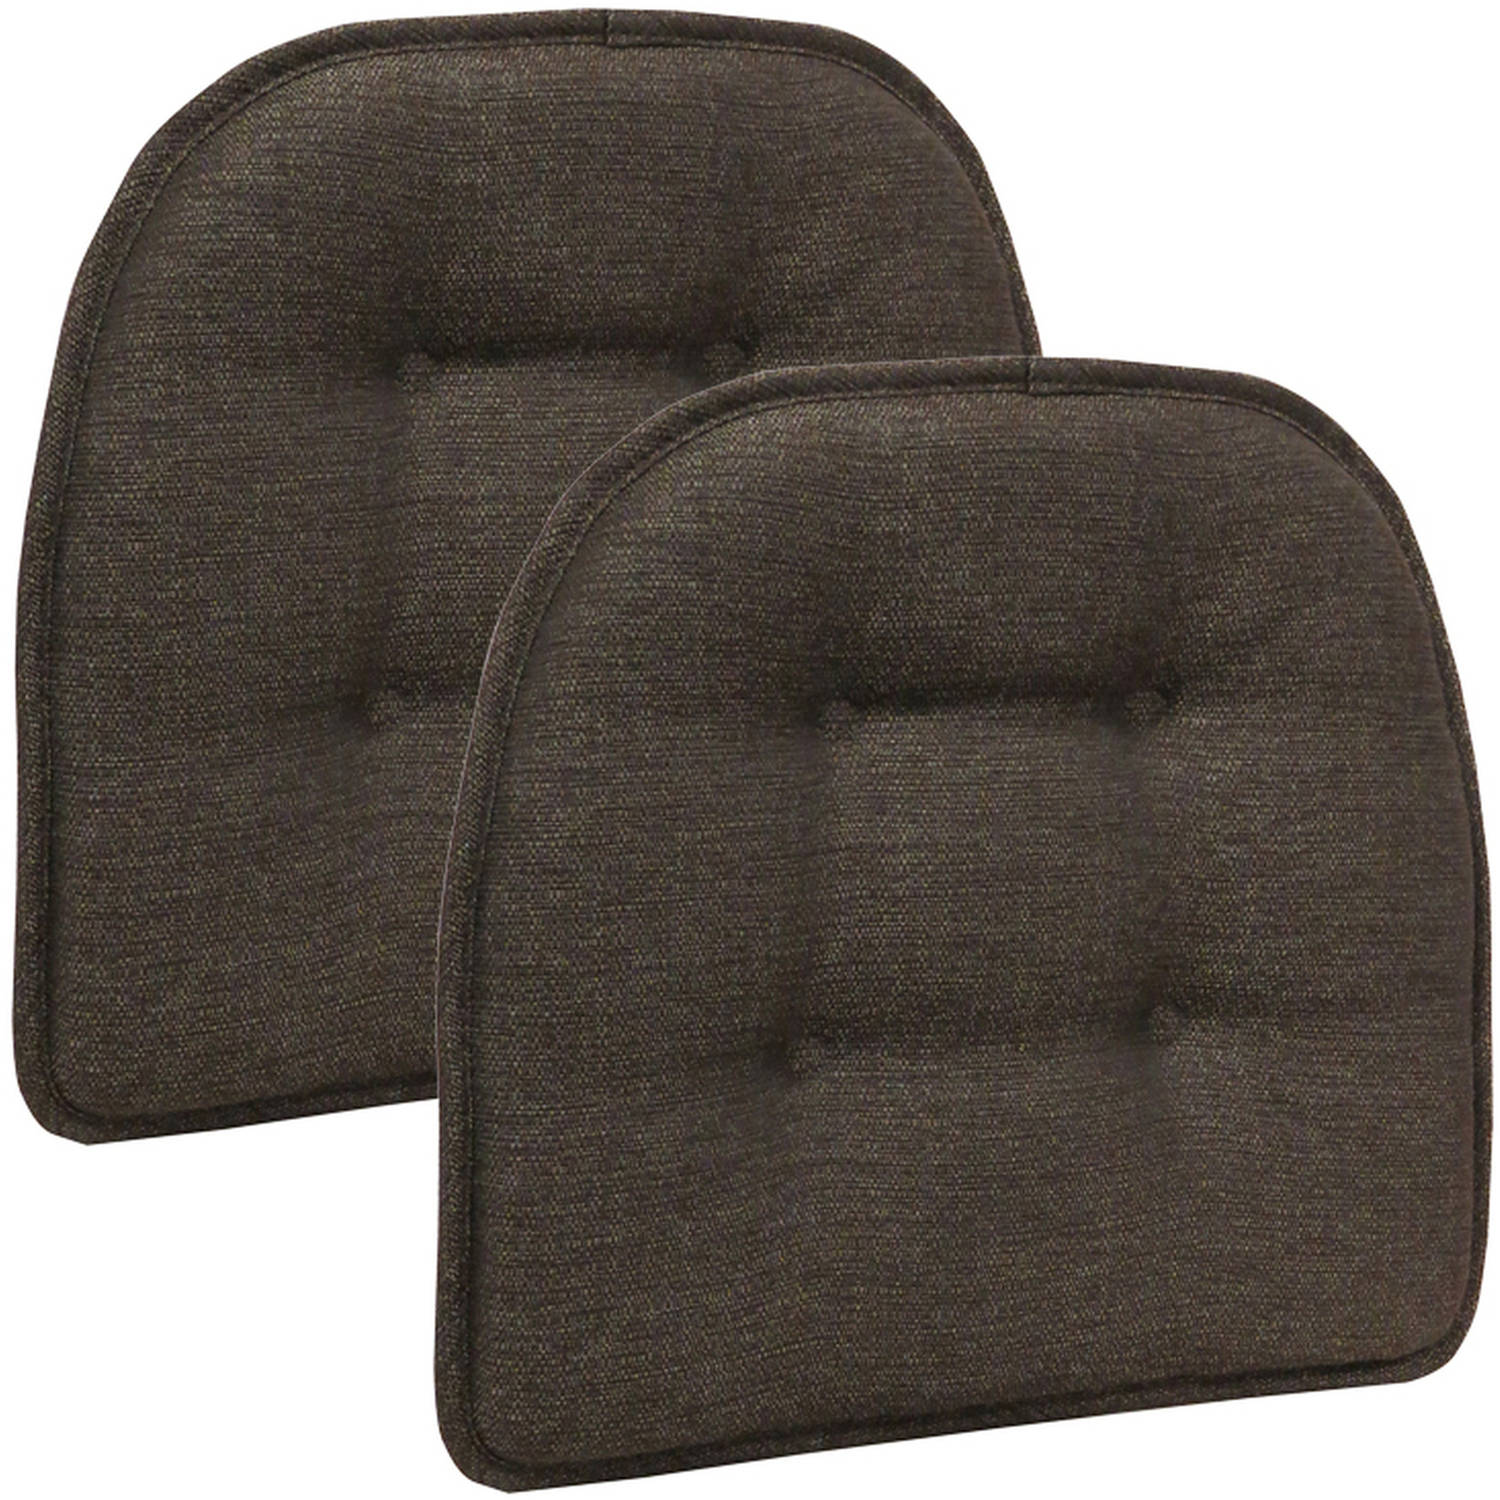 "Gripper Non-Slip 15"" x 16"" Omega Tufted Chair Cushions, Set of 2"